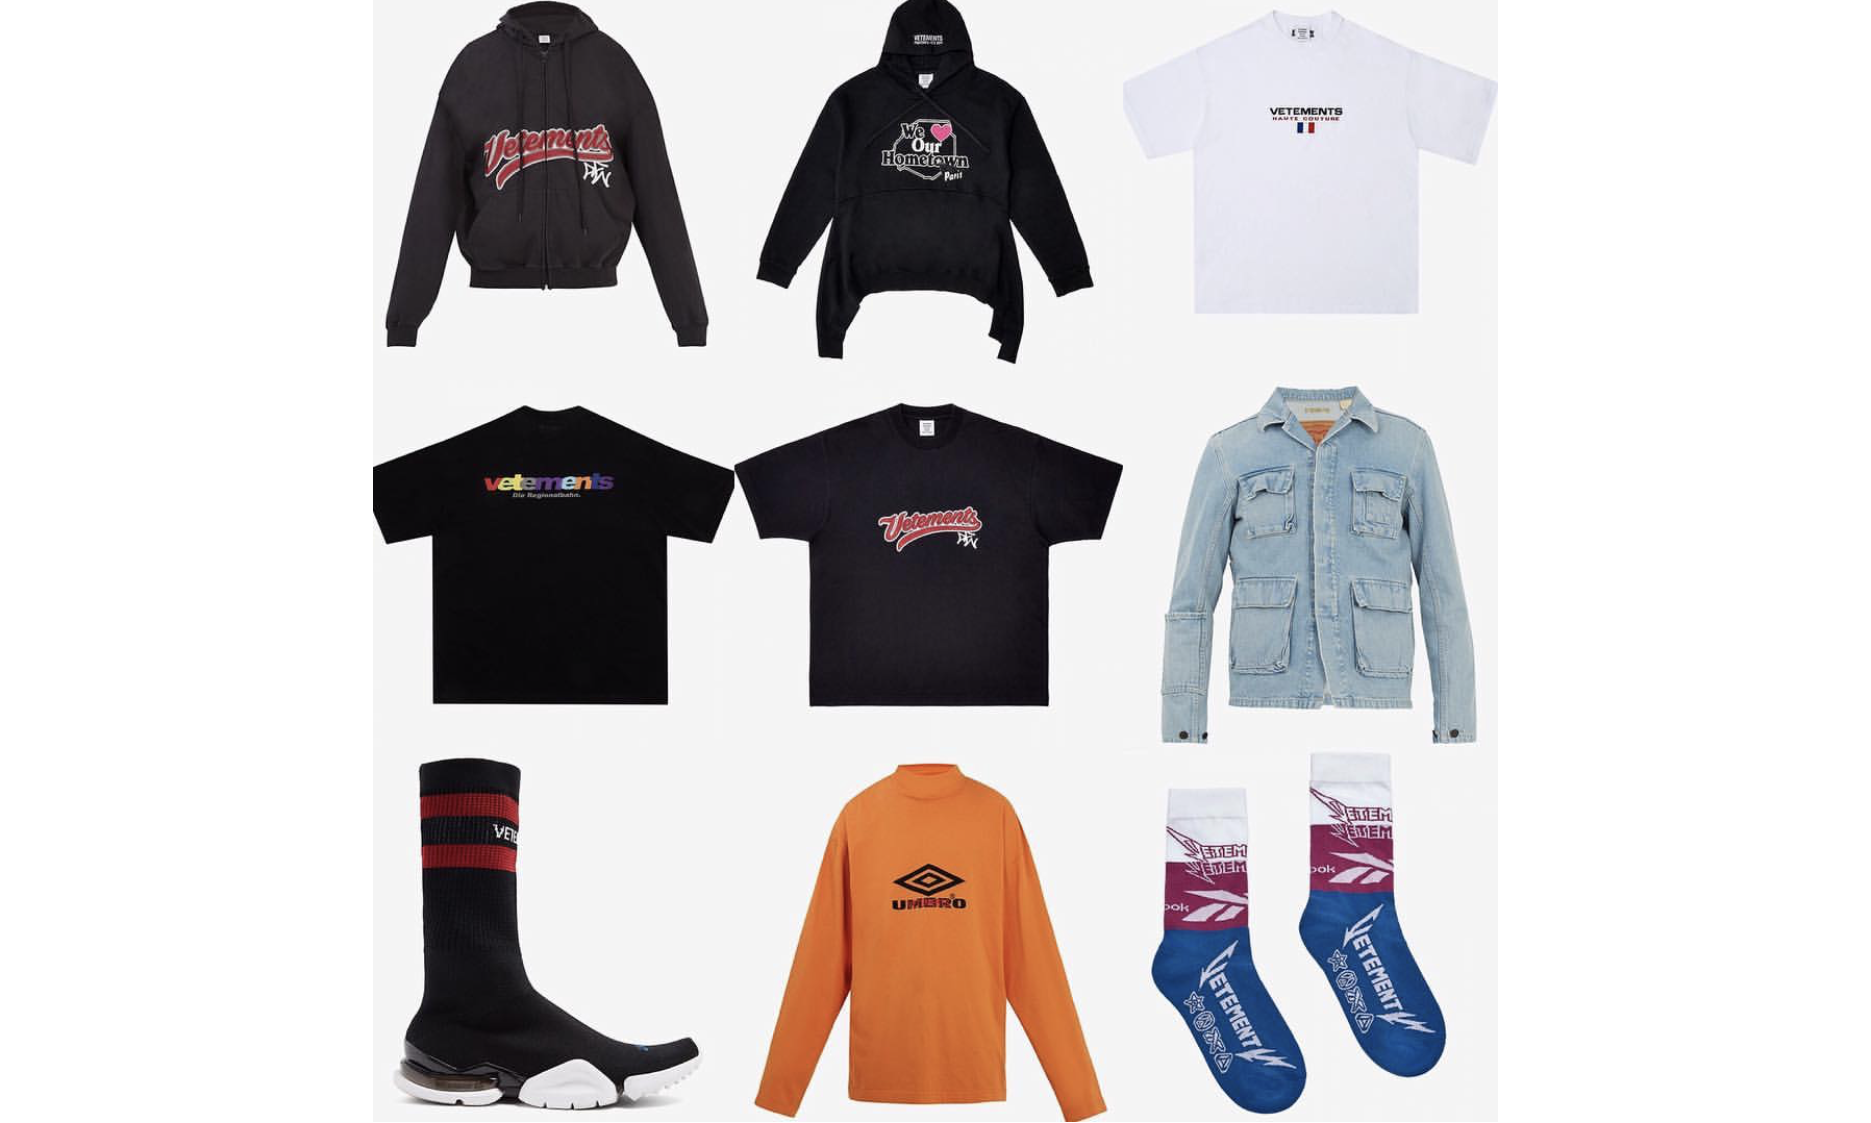 VETEMENTS 2018 春夏系列第二波新品上架